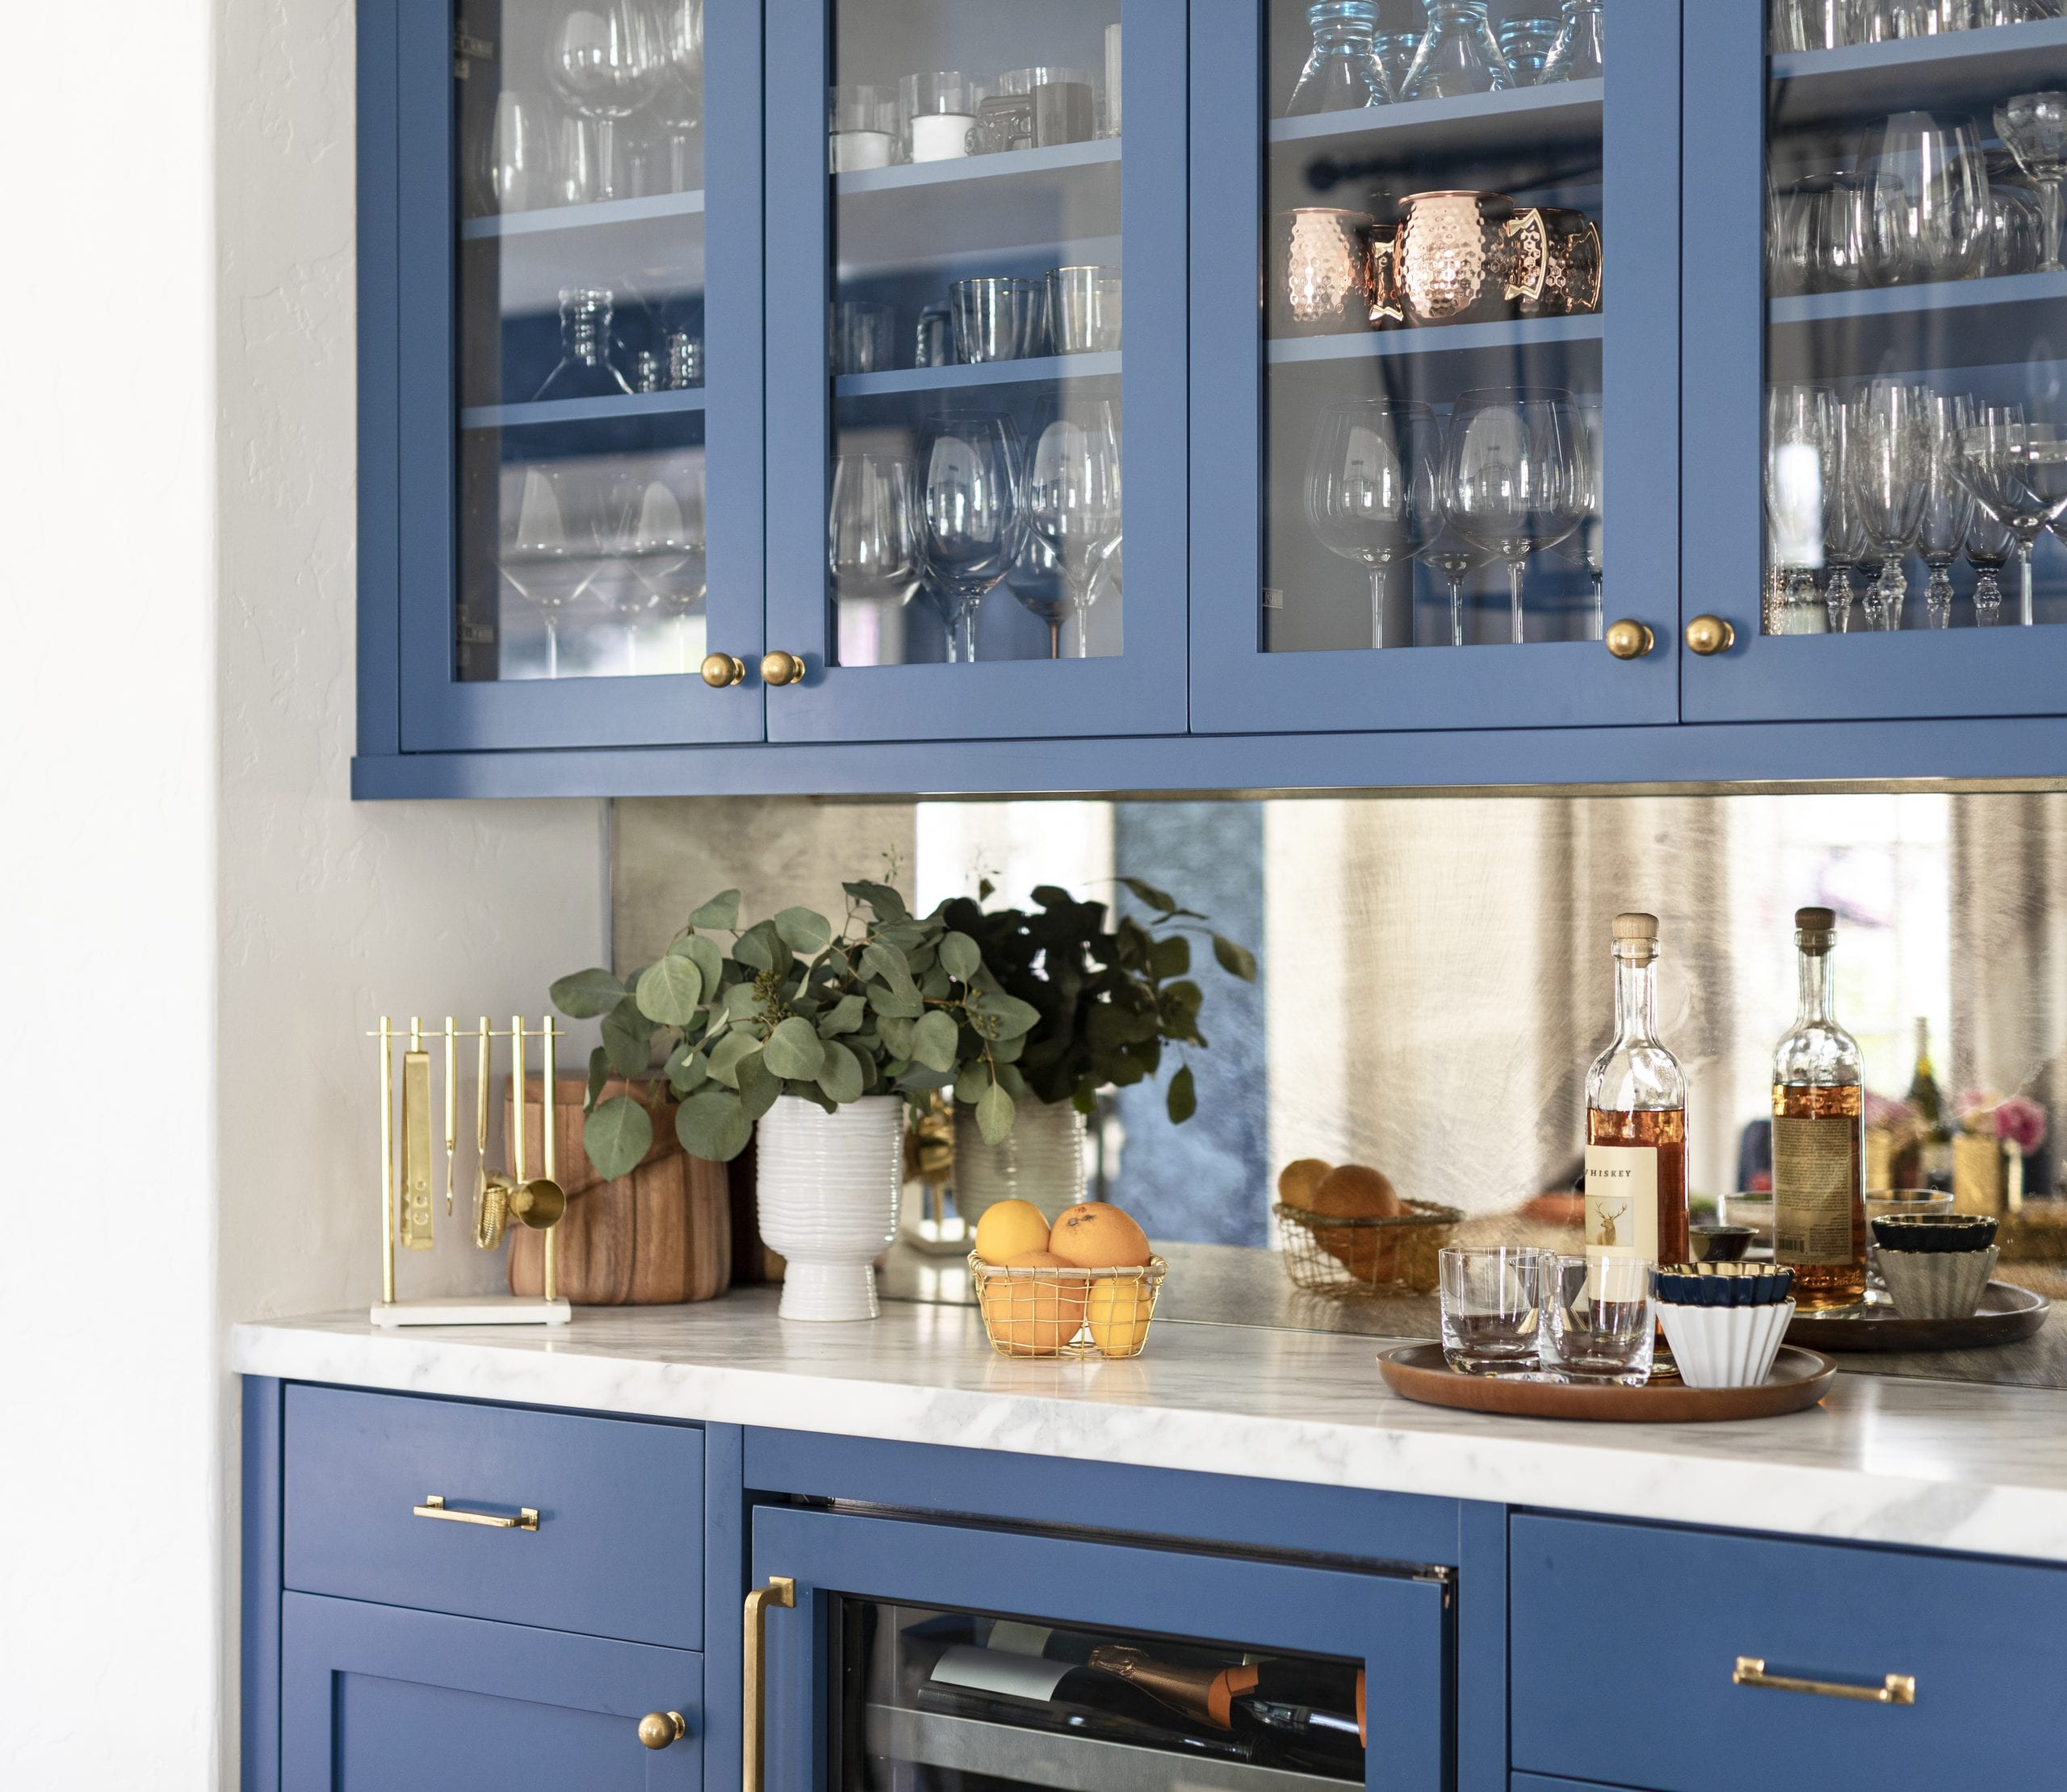 Kitchen cabinets with glass doors showing dishes